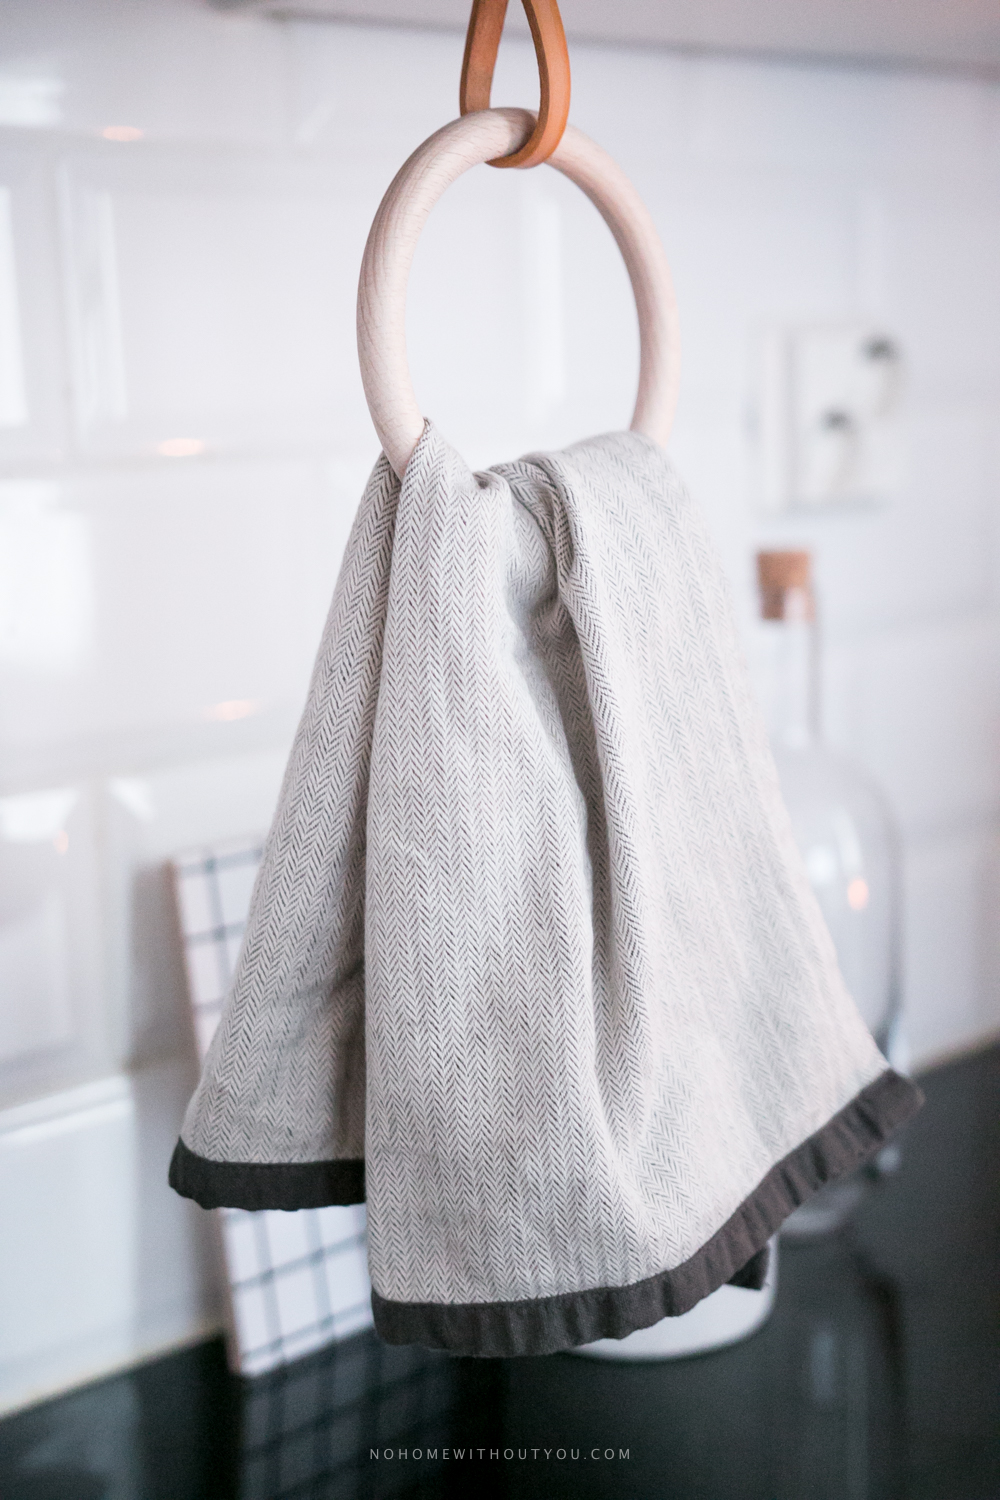 DIY kitchen towel hanger - No Home Without You blog (1 of 3)